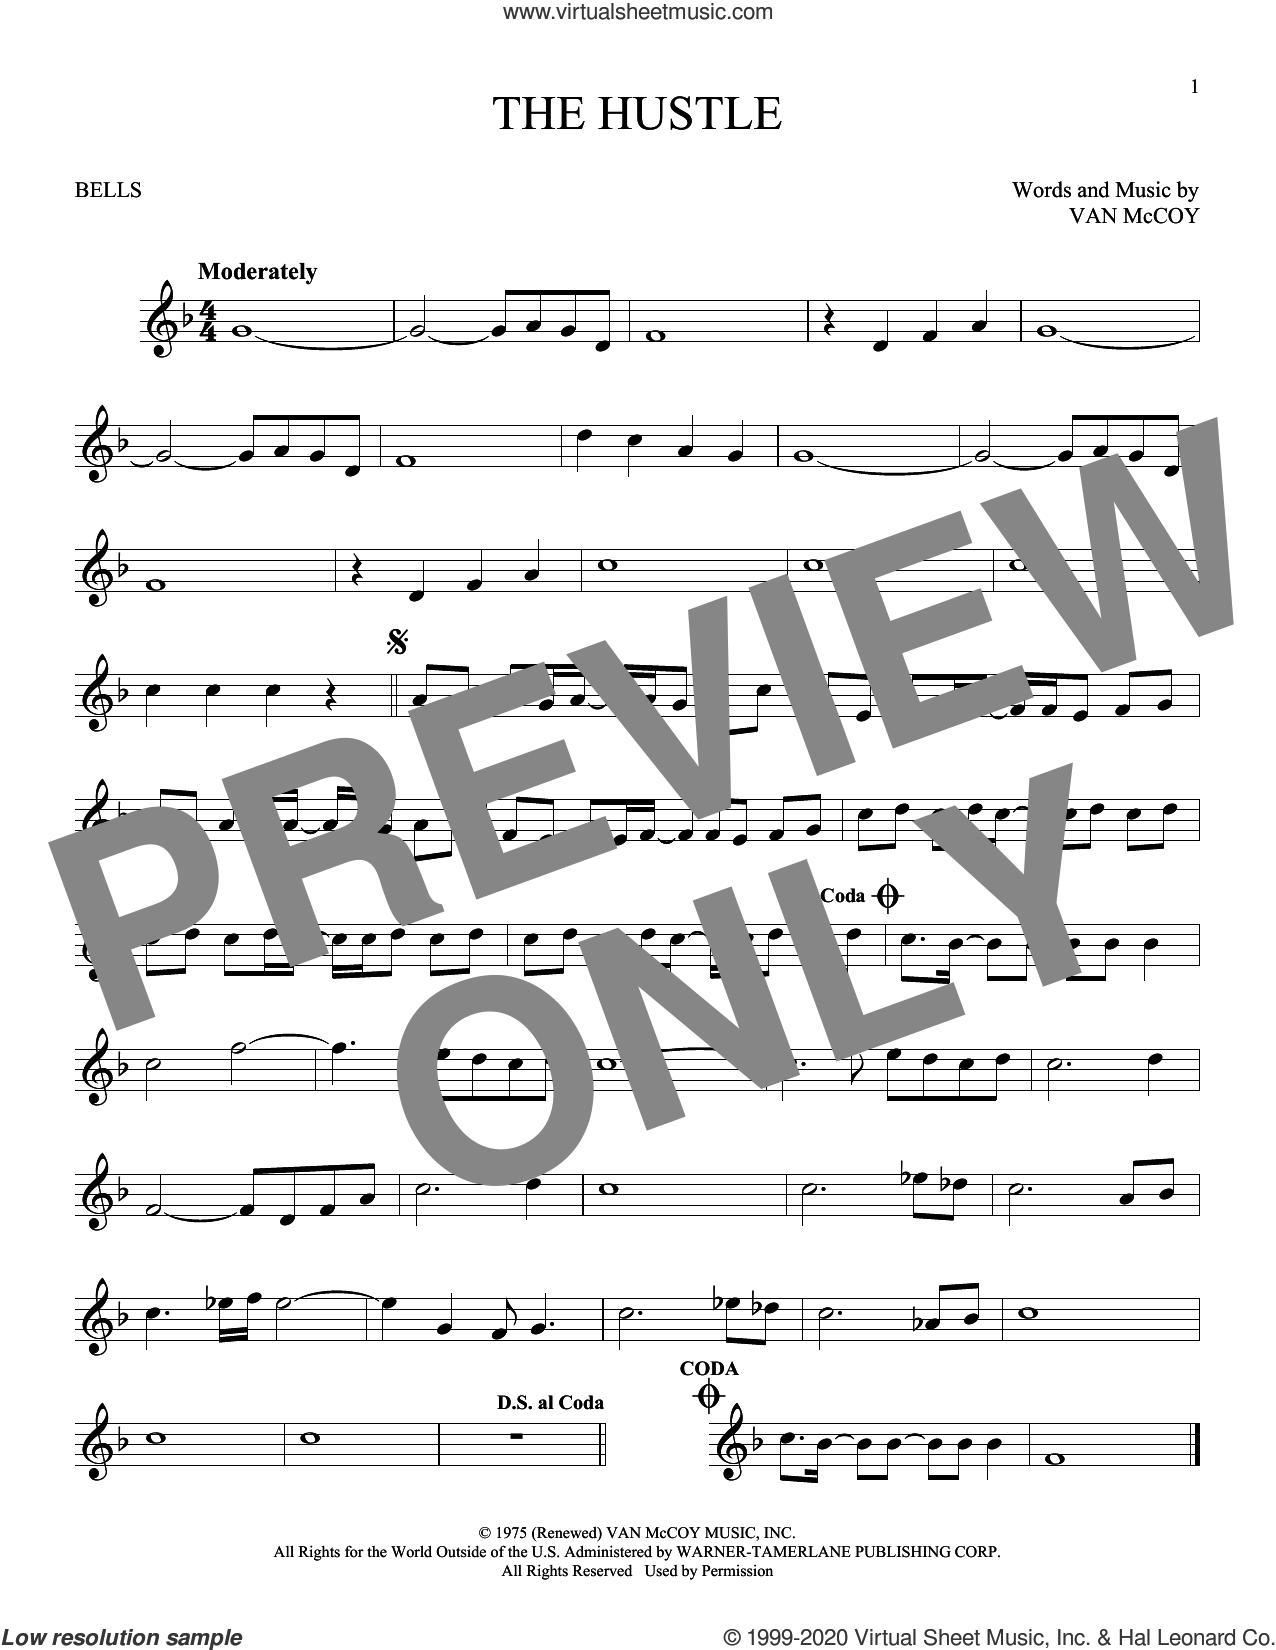 The Hustle sheet music for Hand Bells Solo (bell solo) by Van McCoy, intermediate Hand Bells Solo (bell)